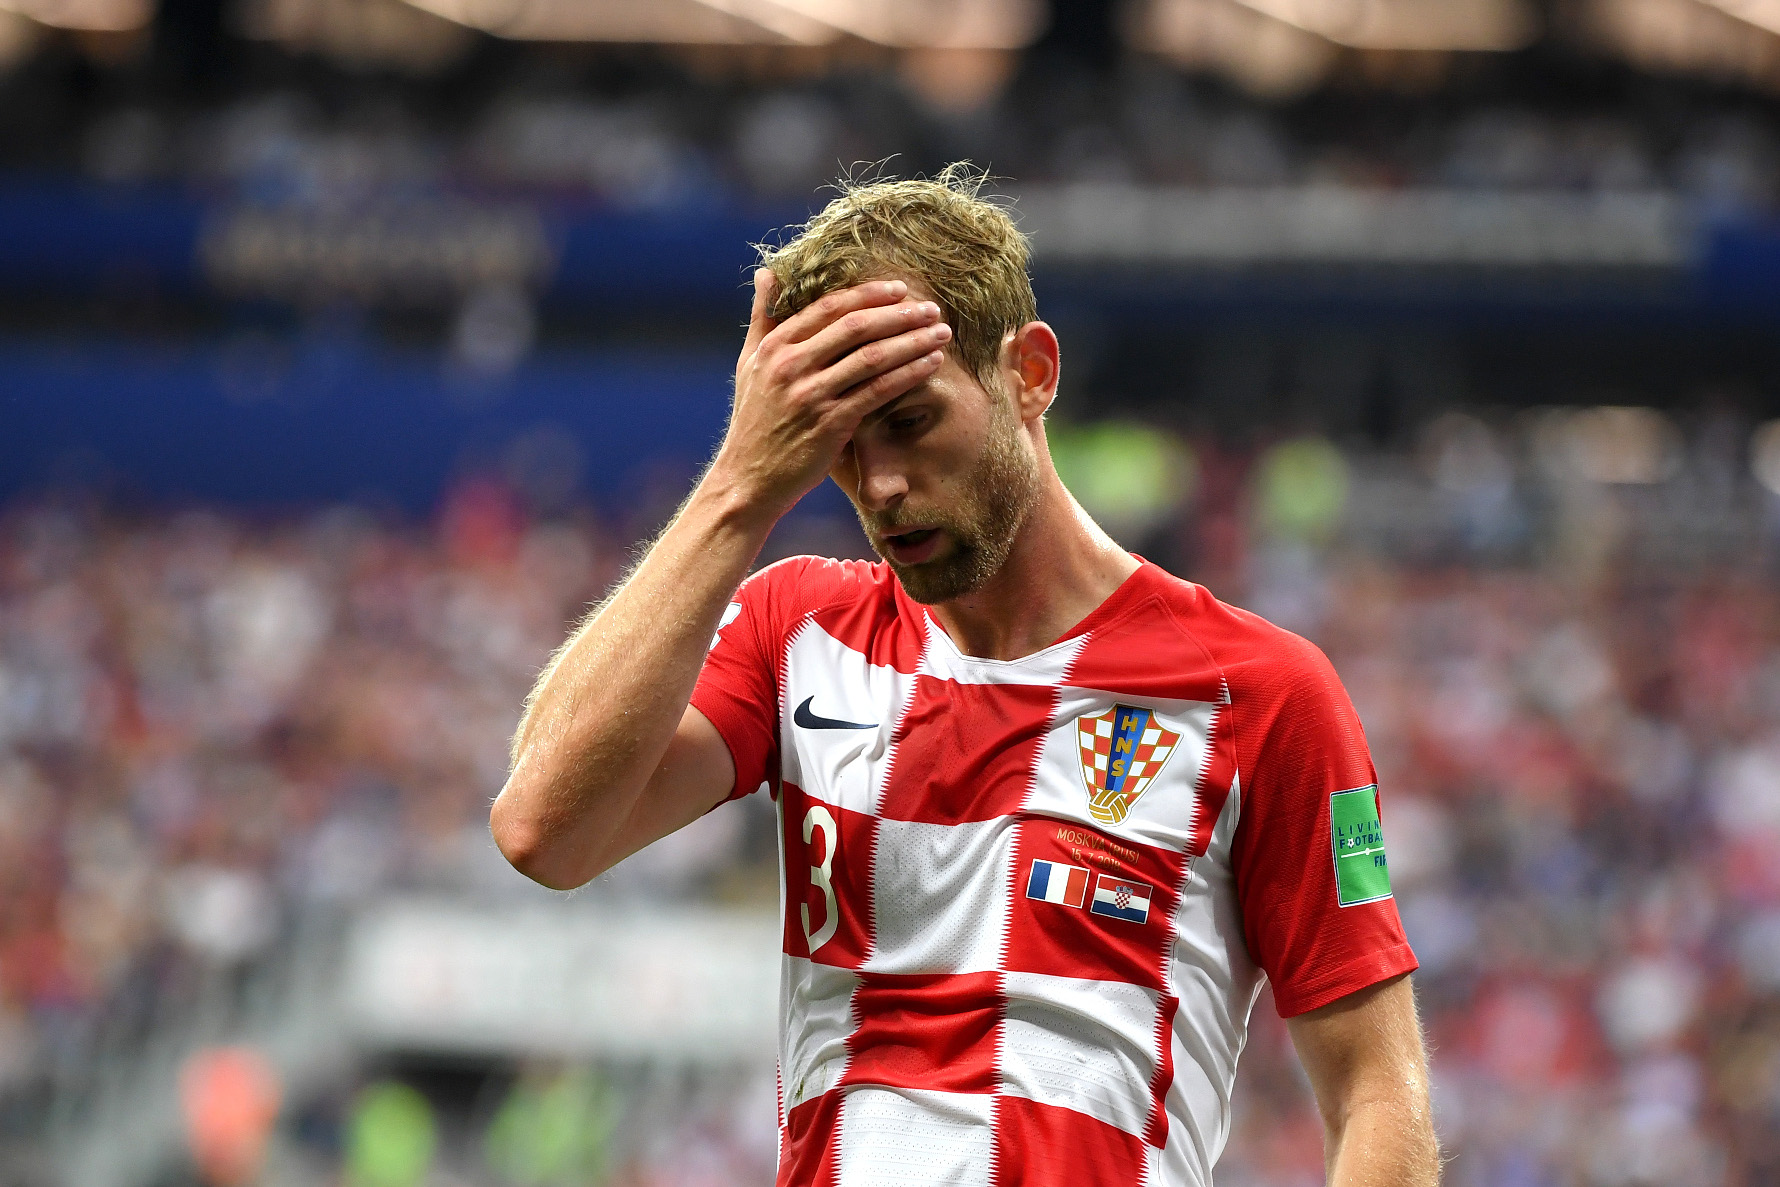 MOSCOW, RUSSIA - JULY 15:  Ivan Strinic of Croatia stands dejected during the 2018 FIFA World Cup Final between France and Croatia at Luzhniki Stadium on July 15, 2018 in Moscow, Russia.  (Photo by Matthias Hangst/Getty Images)